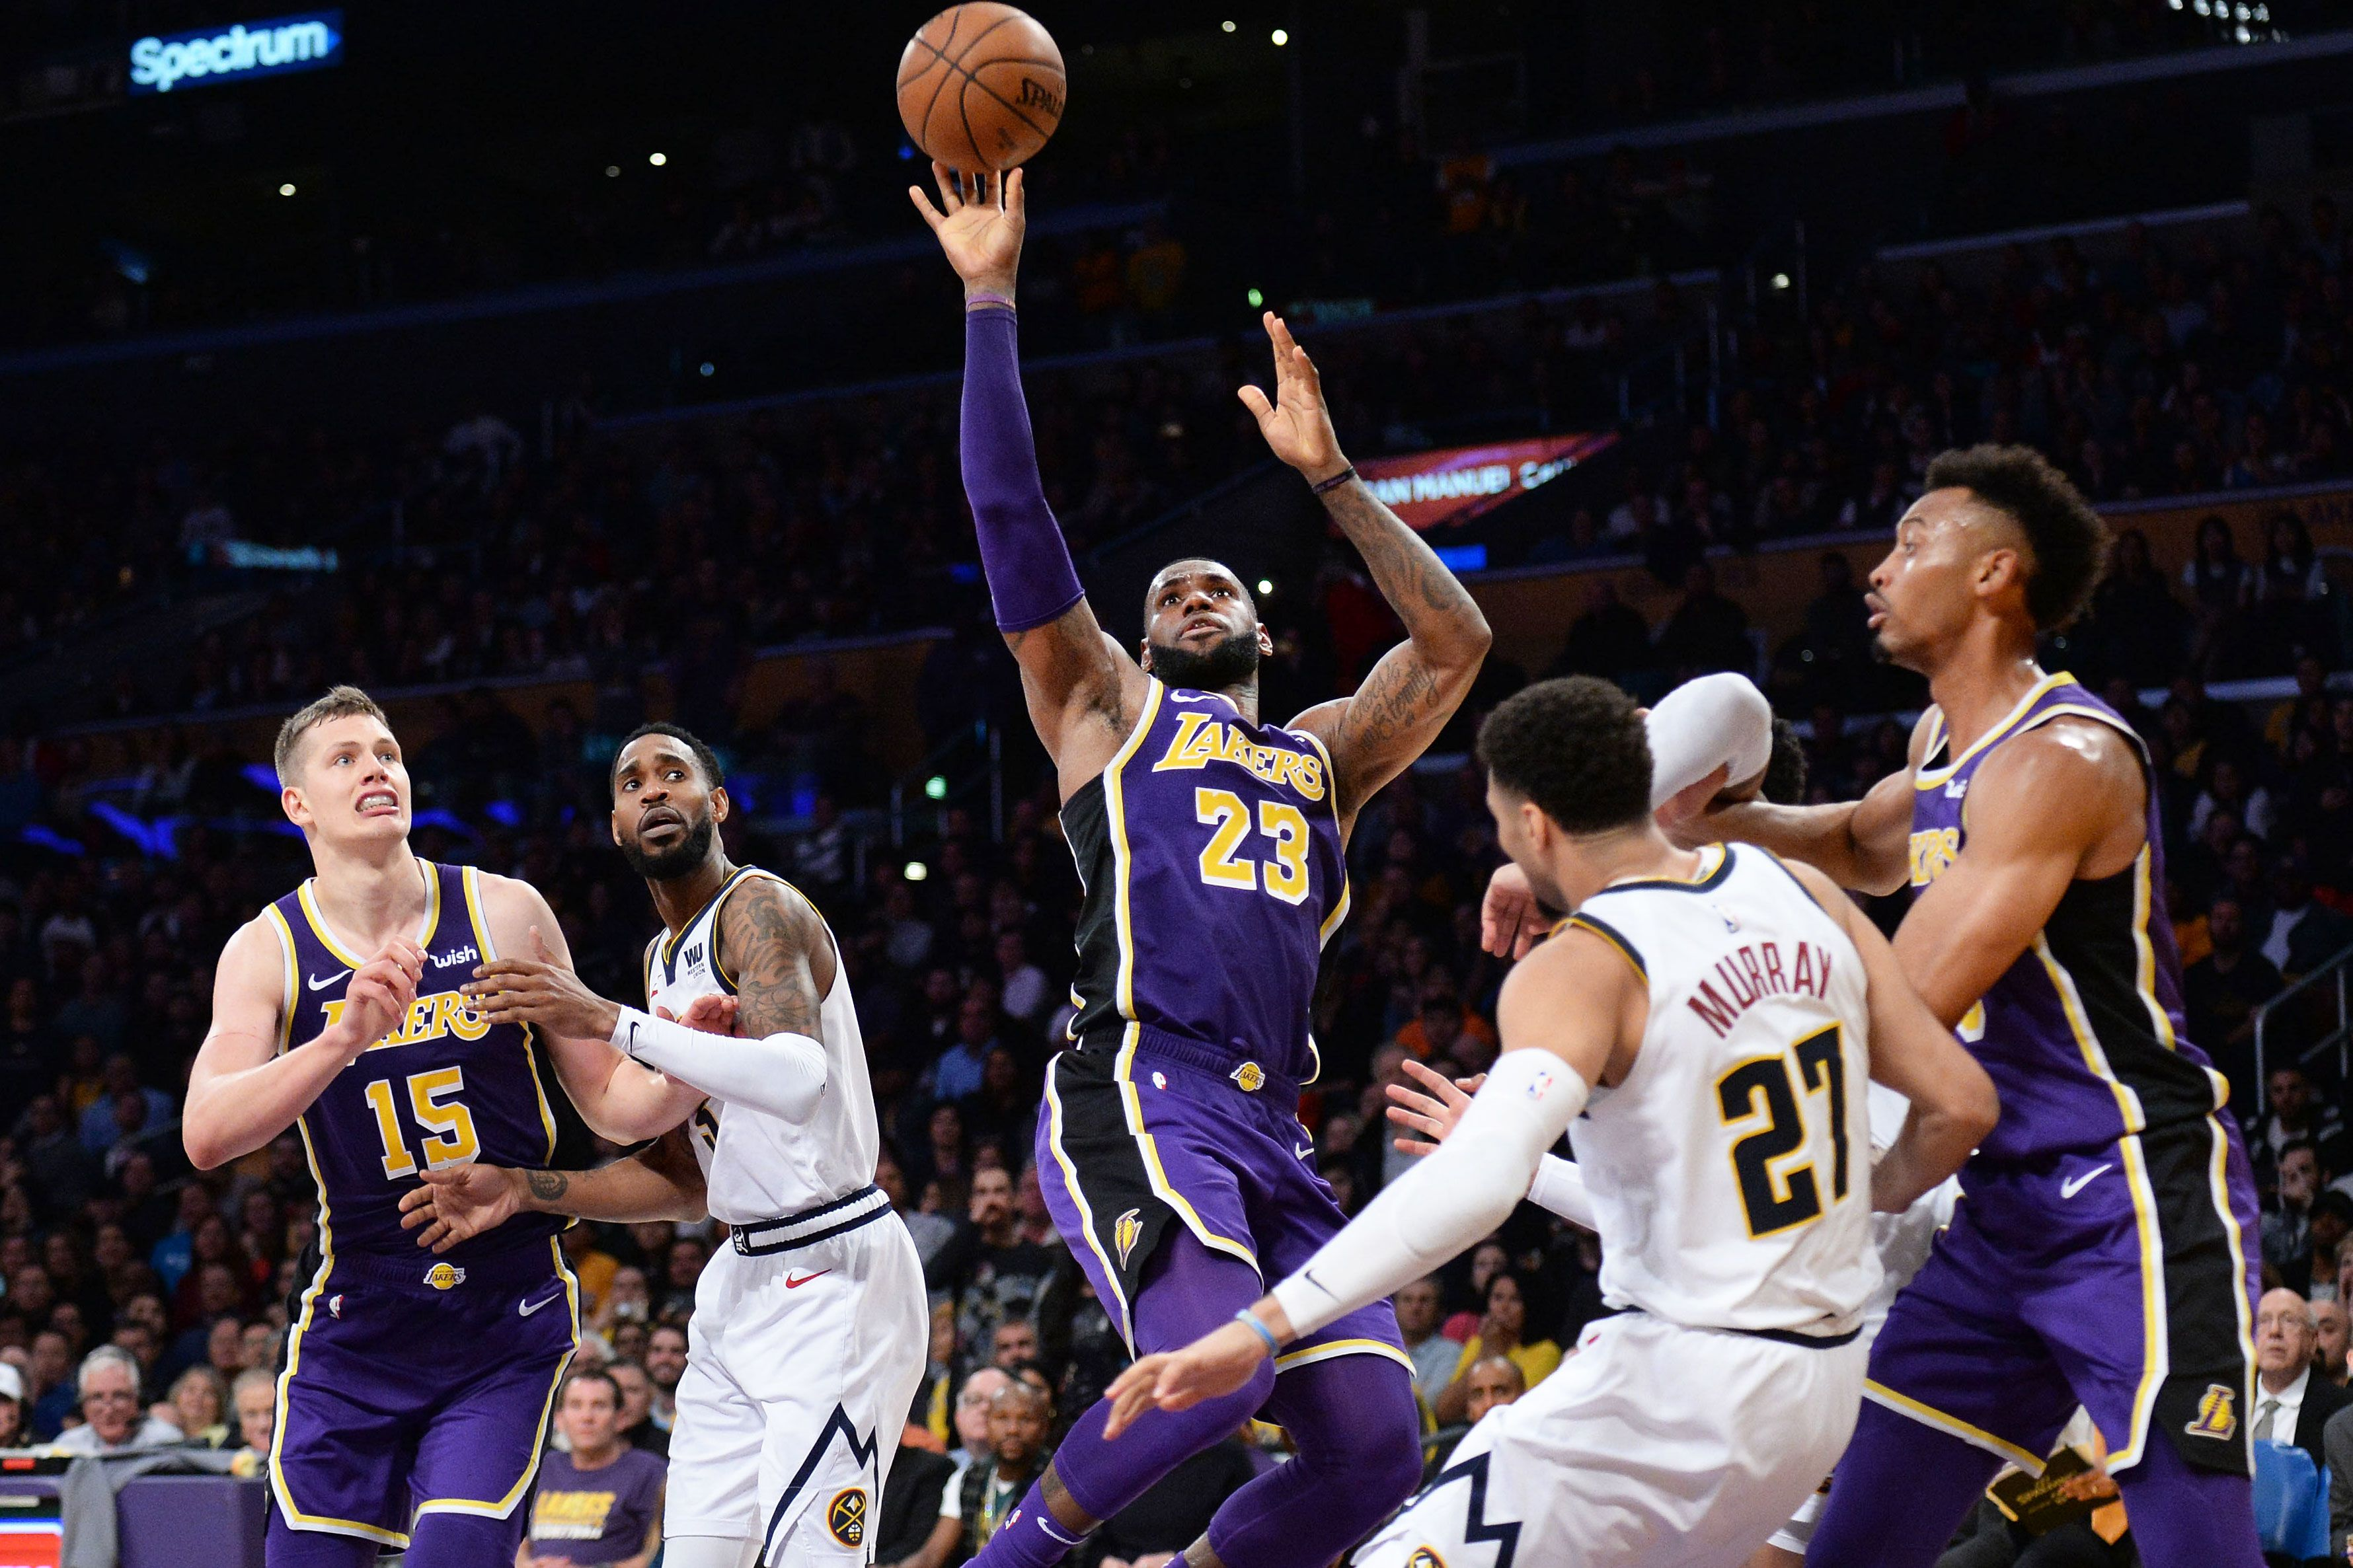 Los Angeles Lakers, Delta extend partnership; now offering ticket exchange service